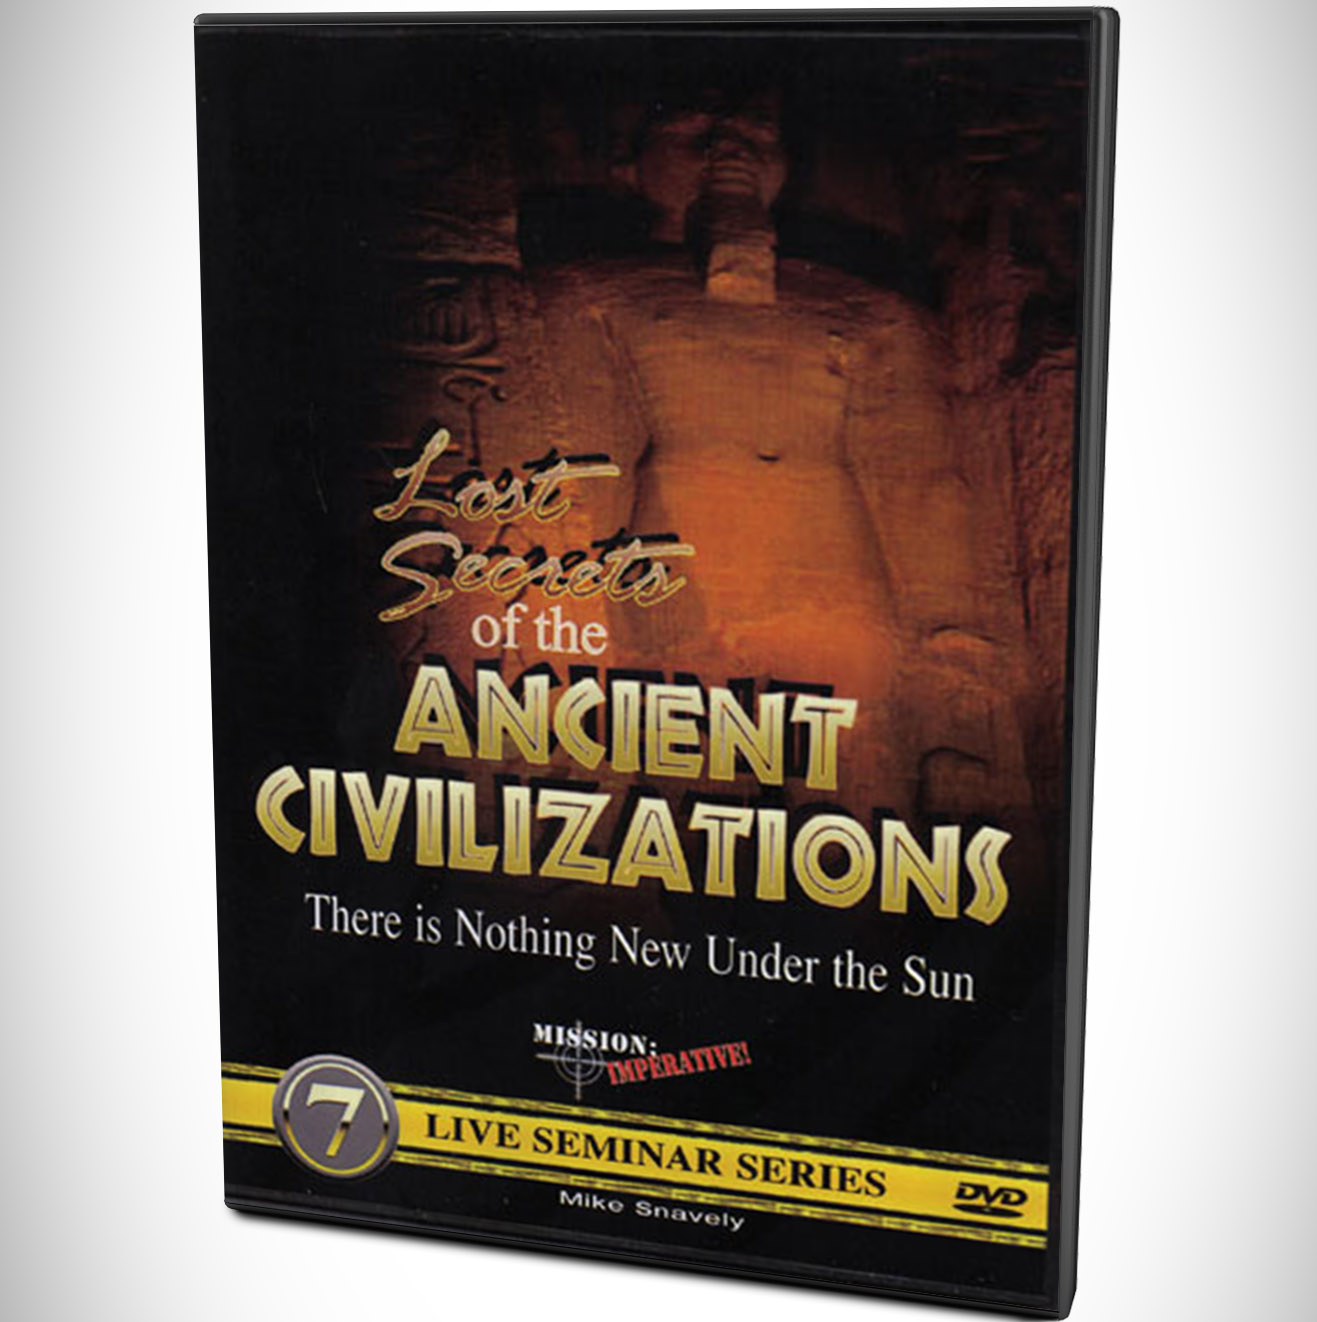 Lost Secrets of the Ancient Civilizations DVD